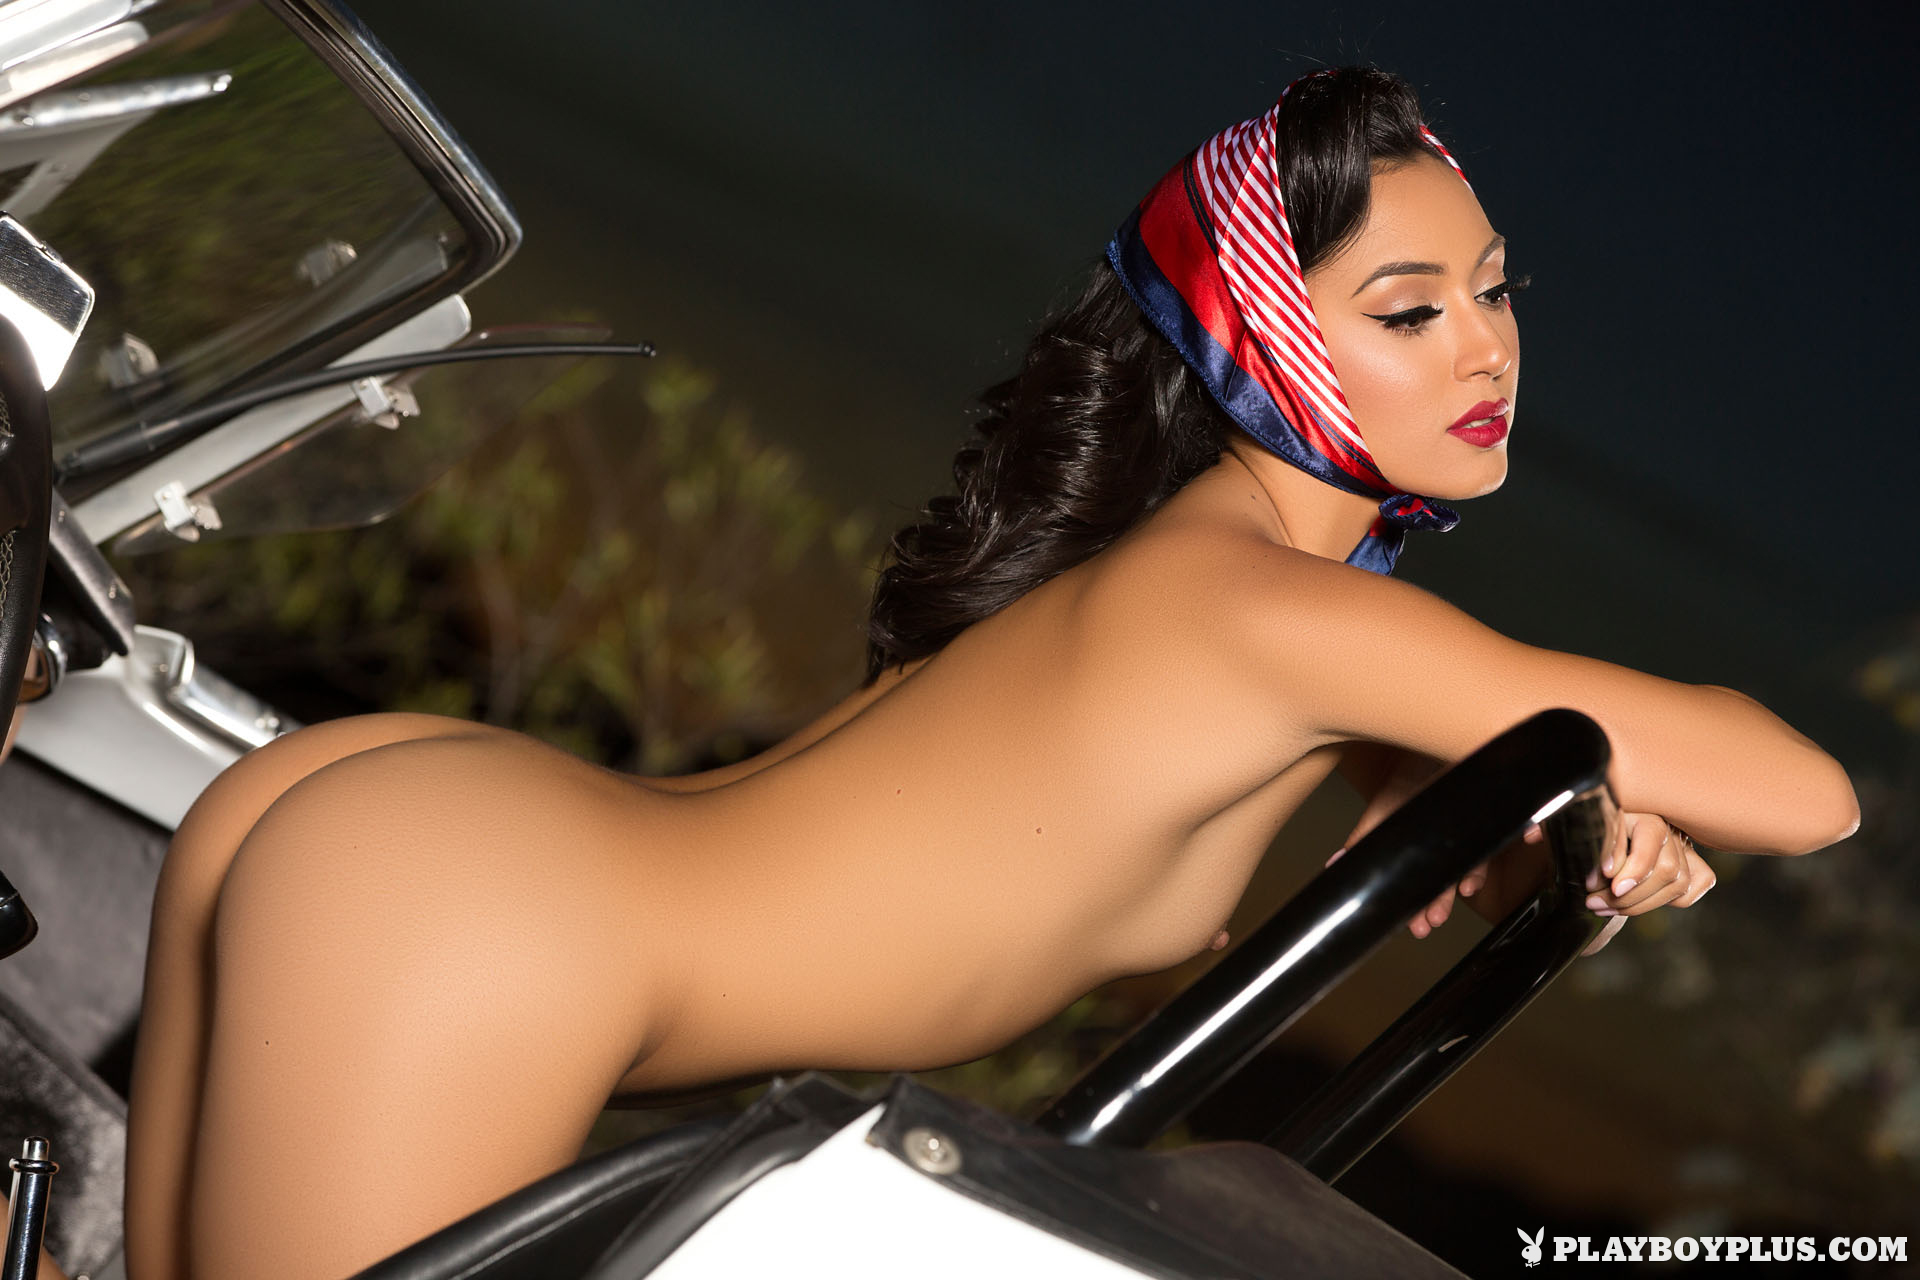 alexandra-young-austin-healey-sprite-small-tits-playboy-32